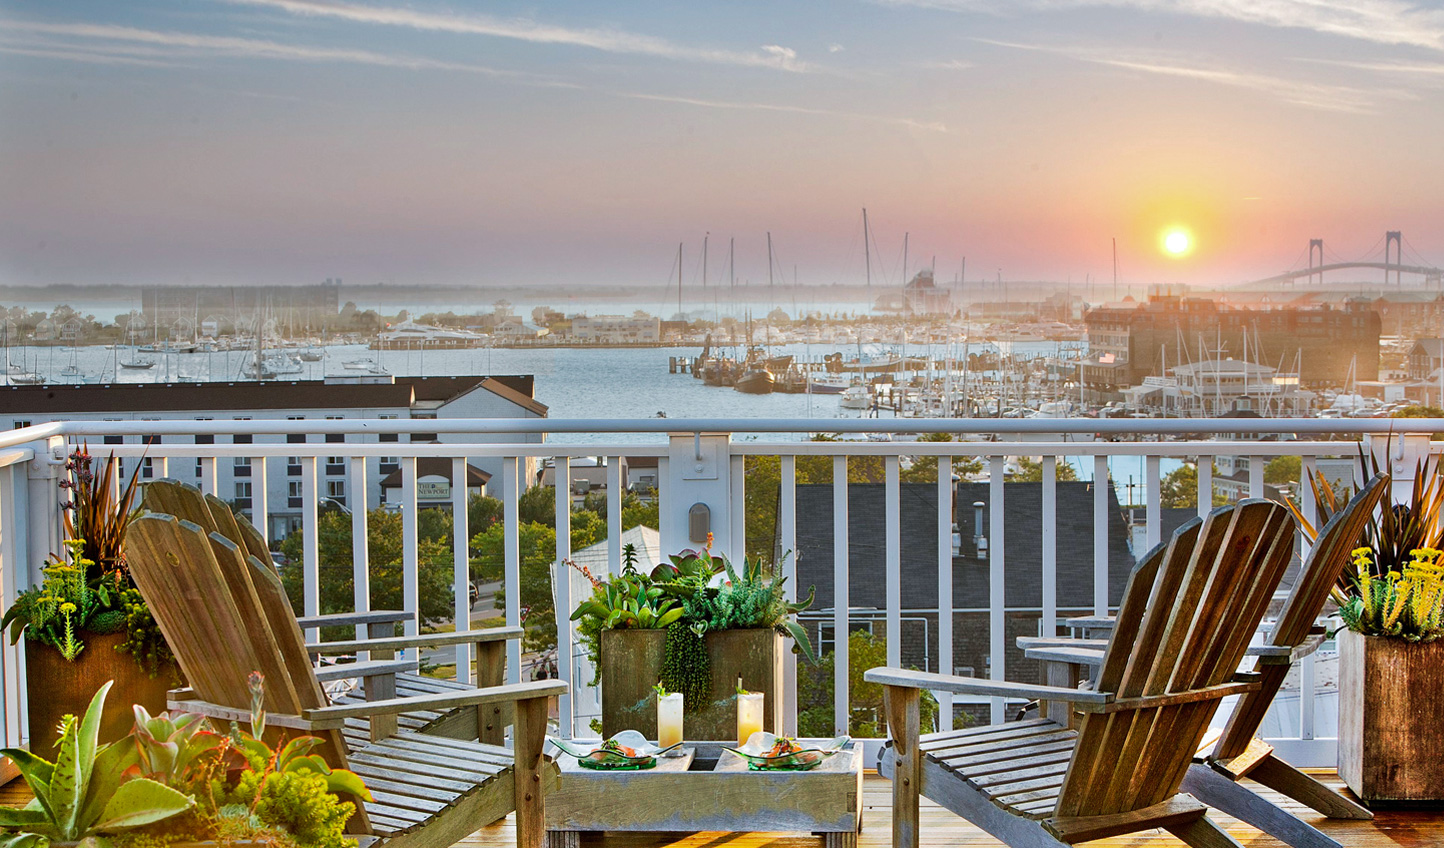 Watch the sun set over the harbour from The Vanderbilt rooftop